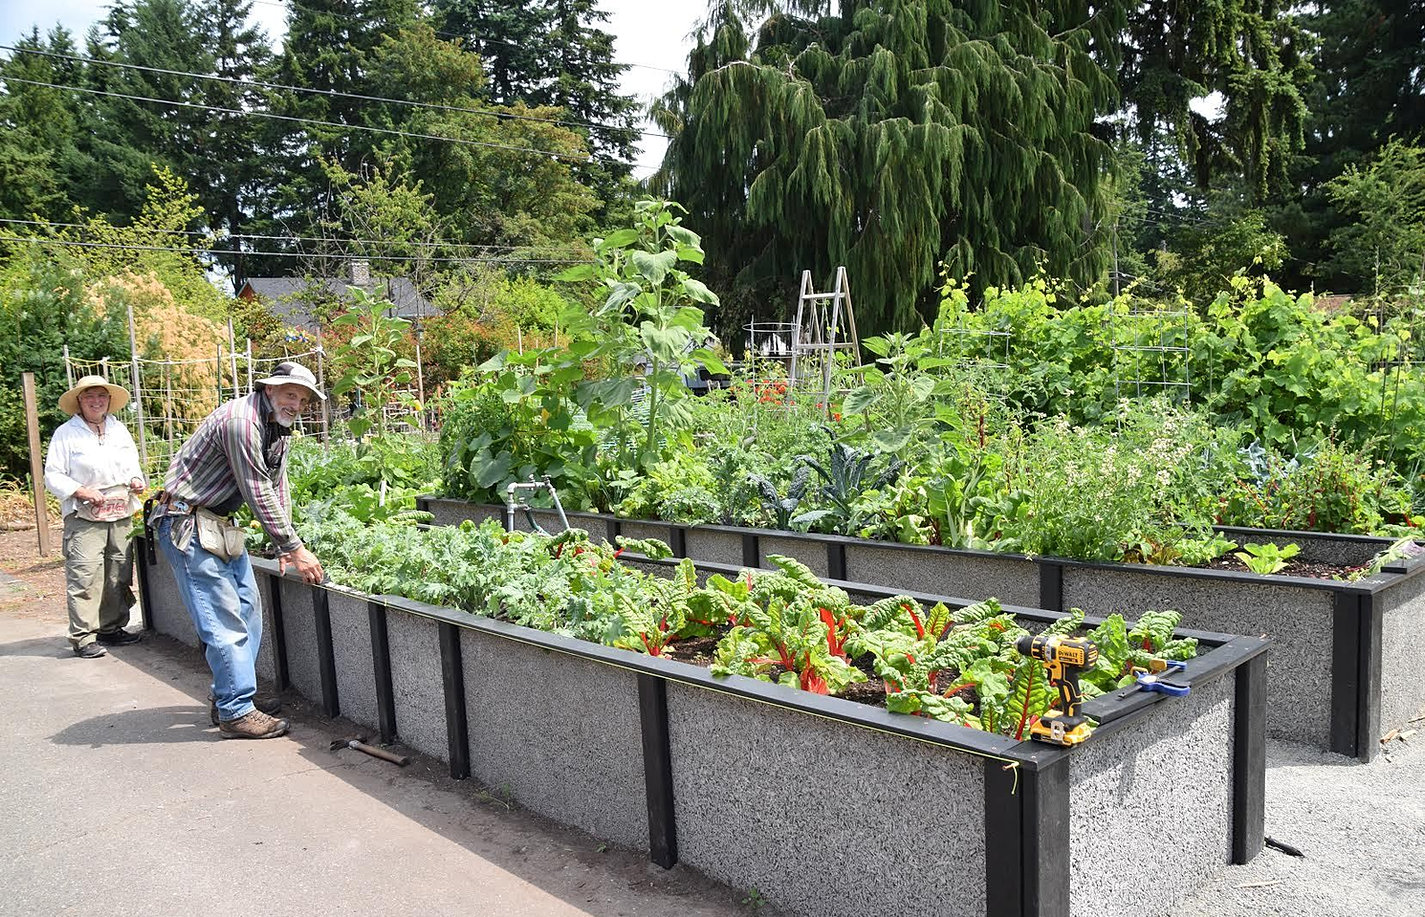 Many P Patches Feature Raised Beds, Which Increase Accessibility.